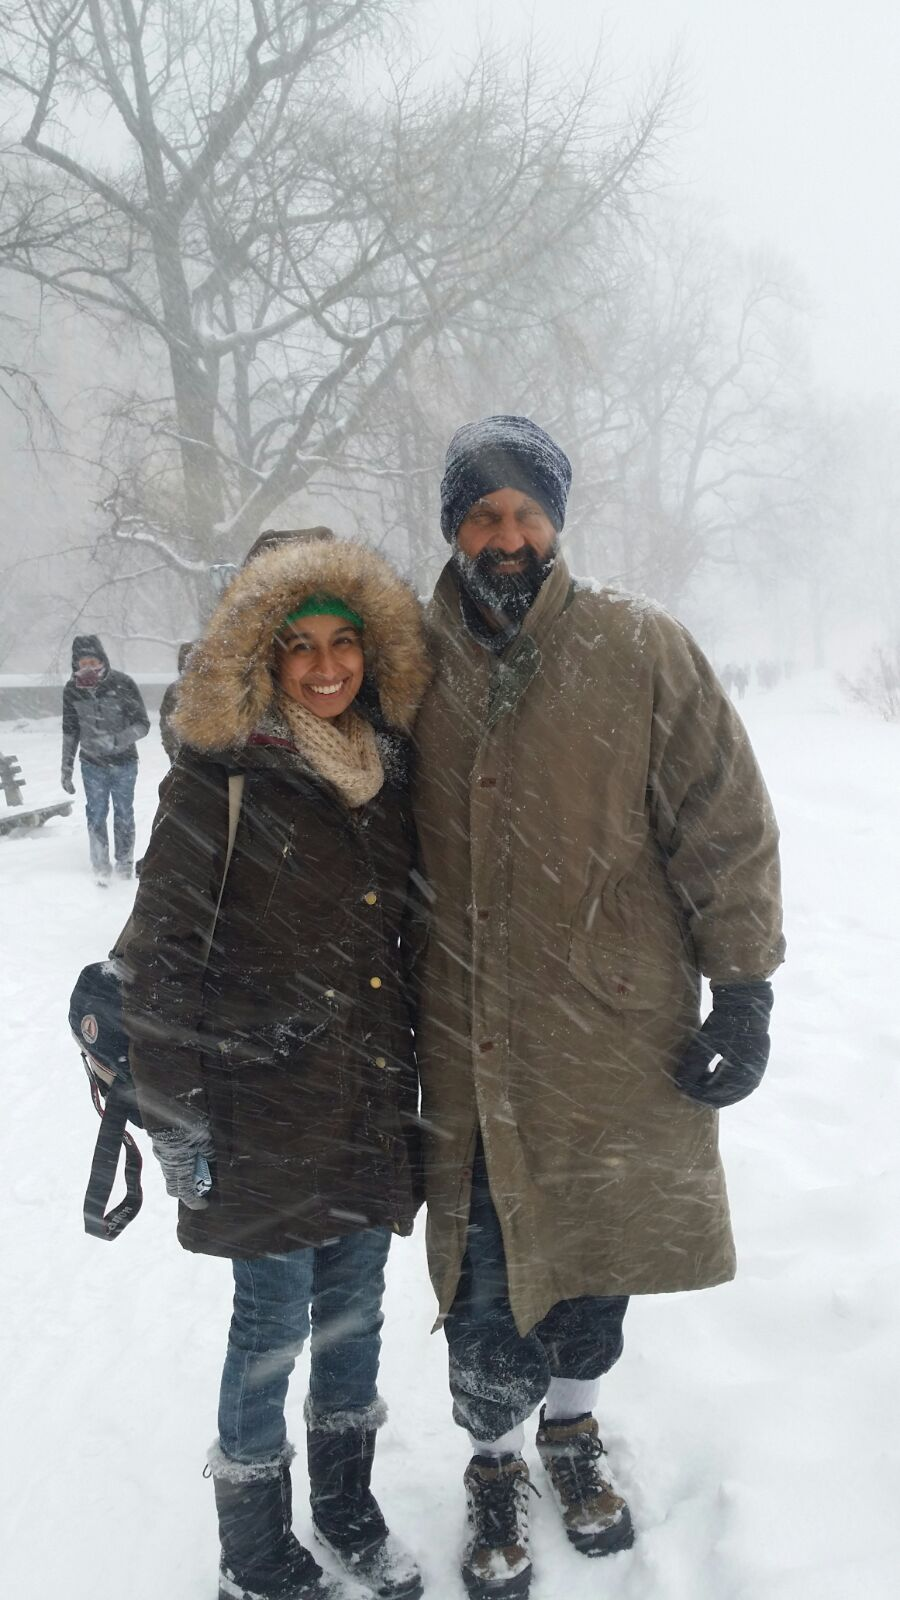 Central Park, New York. January 23, 2016